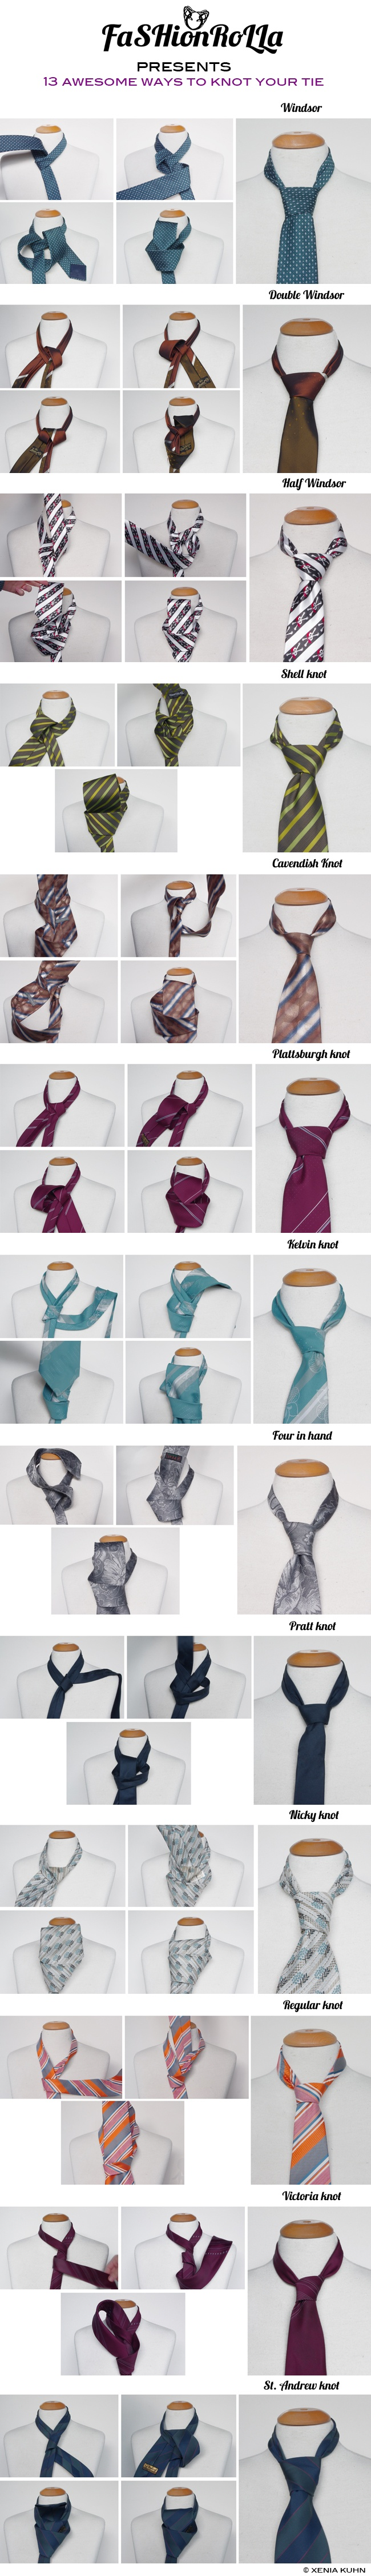 Tutorial: 13 awesome ways to knot your tie